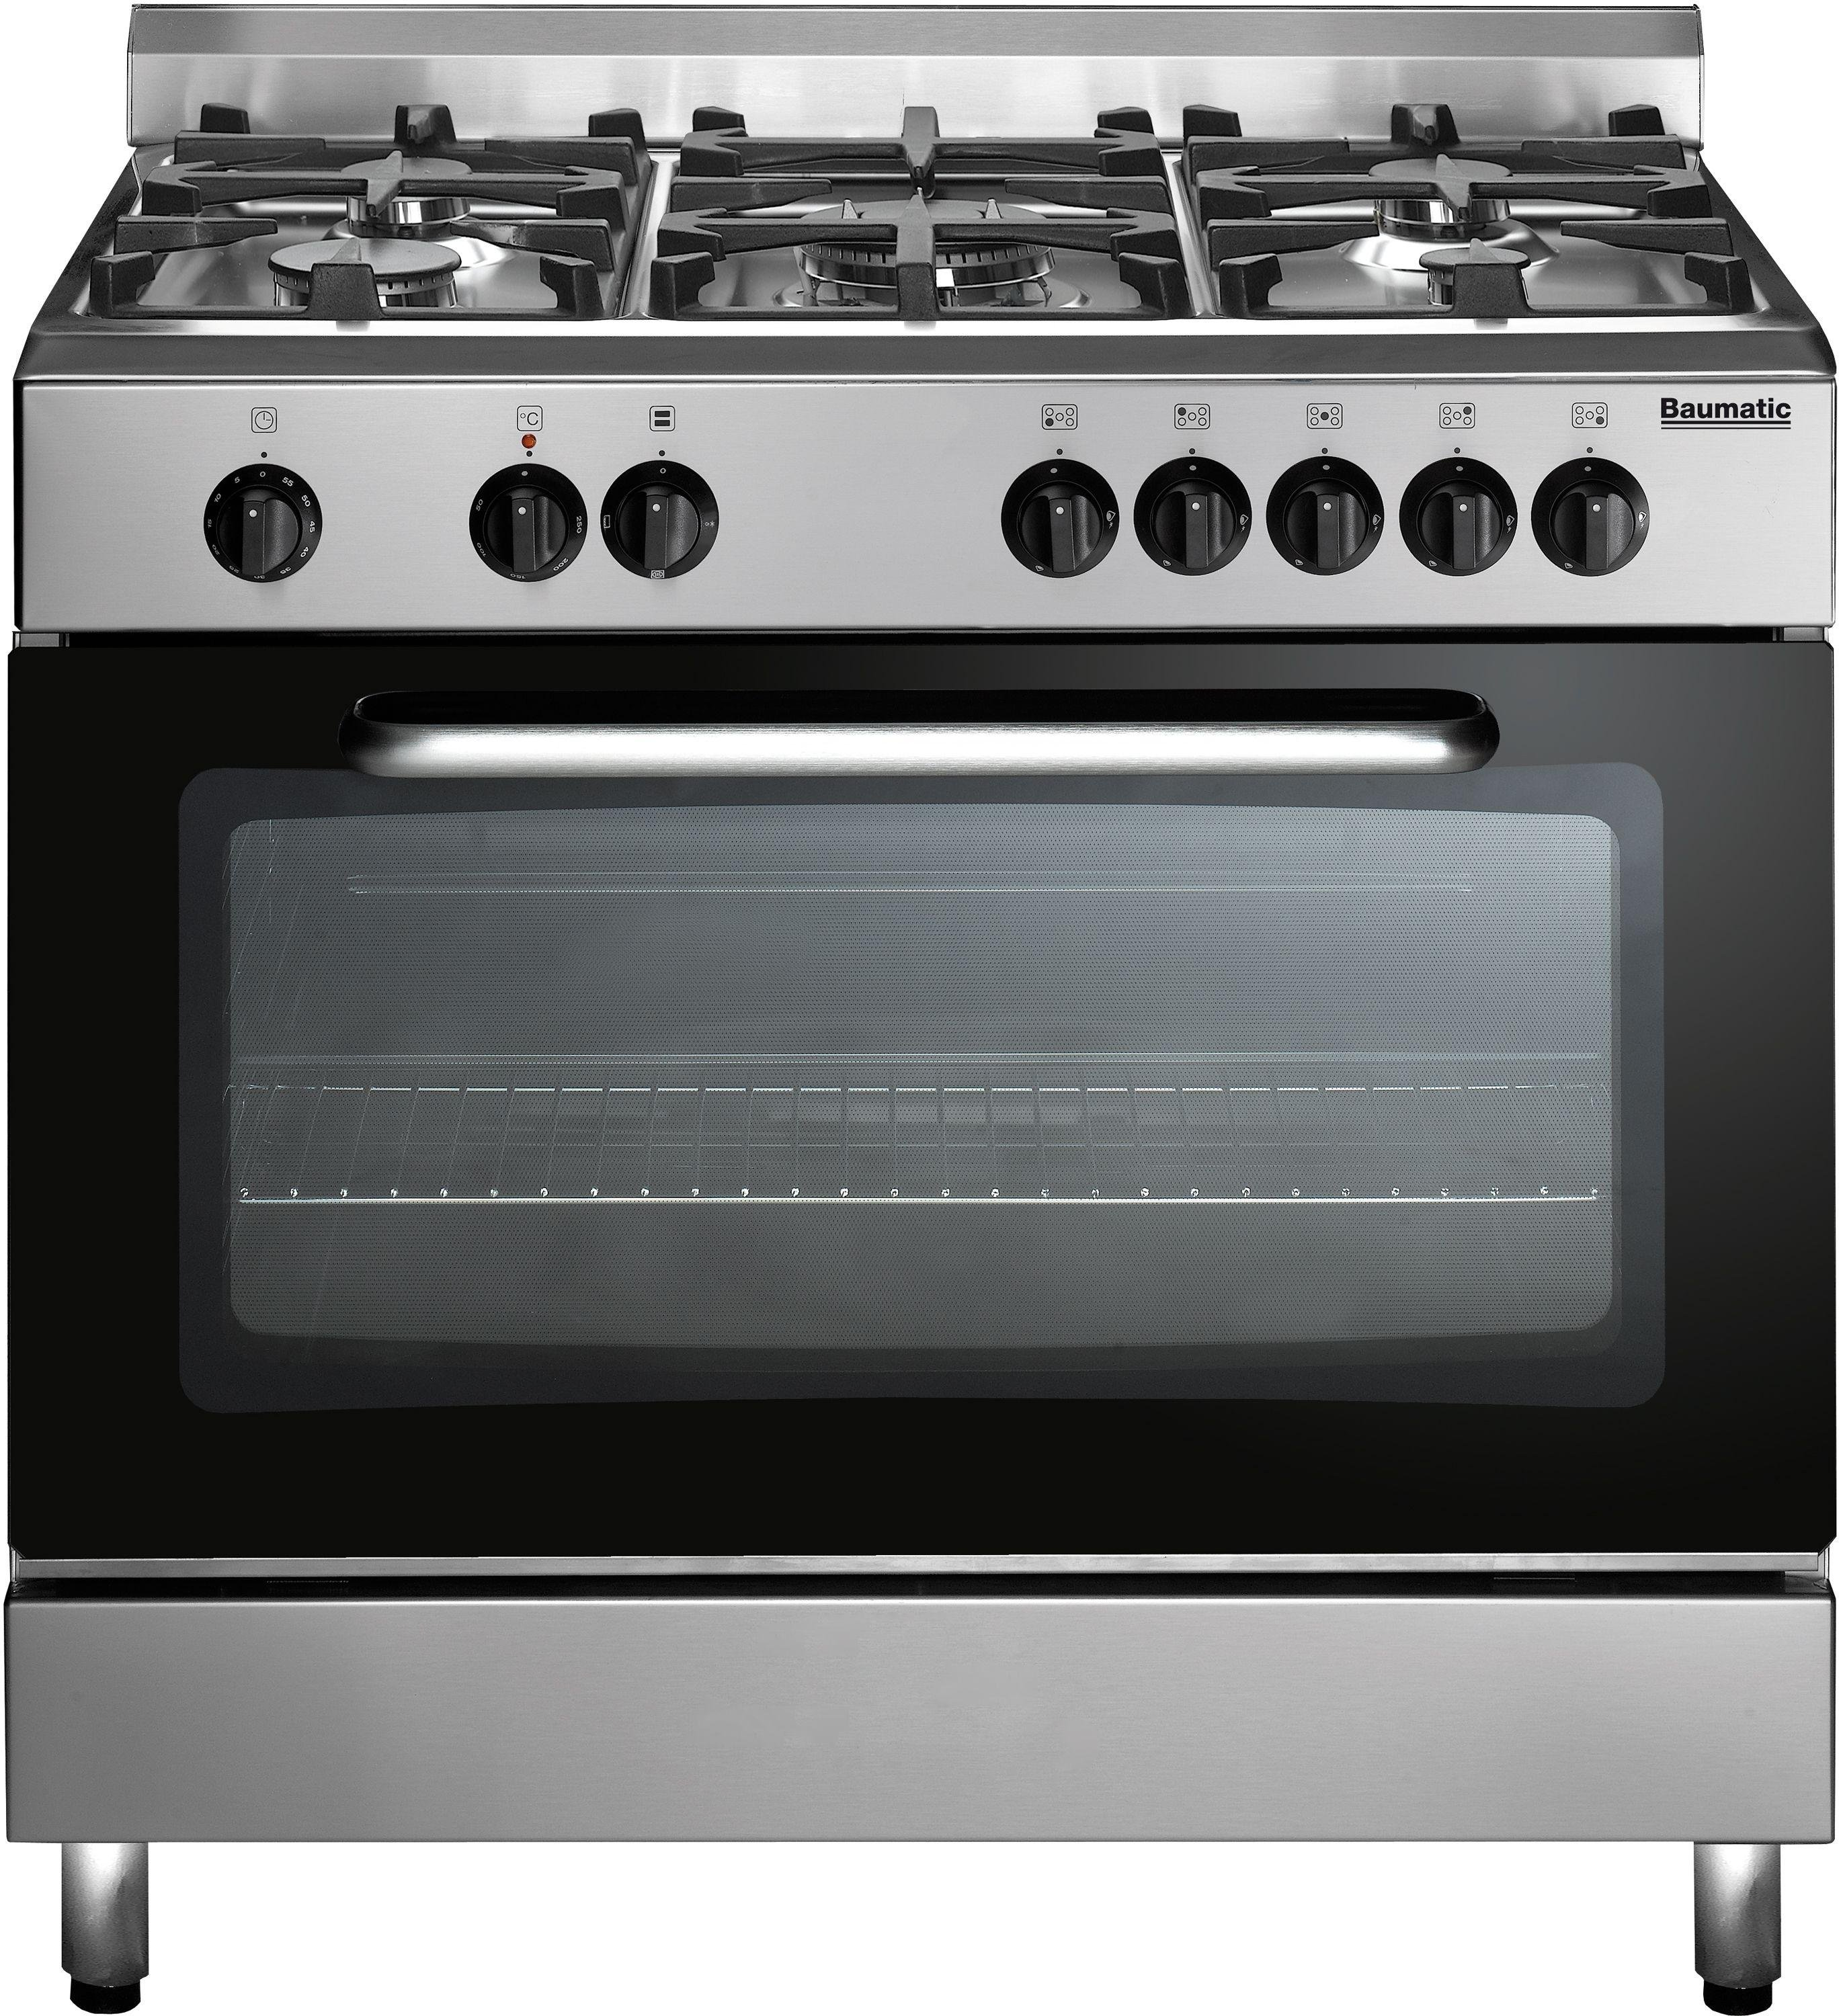 Image of Baumatic - BC391.3 - Dual Fuel Range Cooker - Stainless Steel